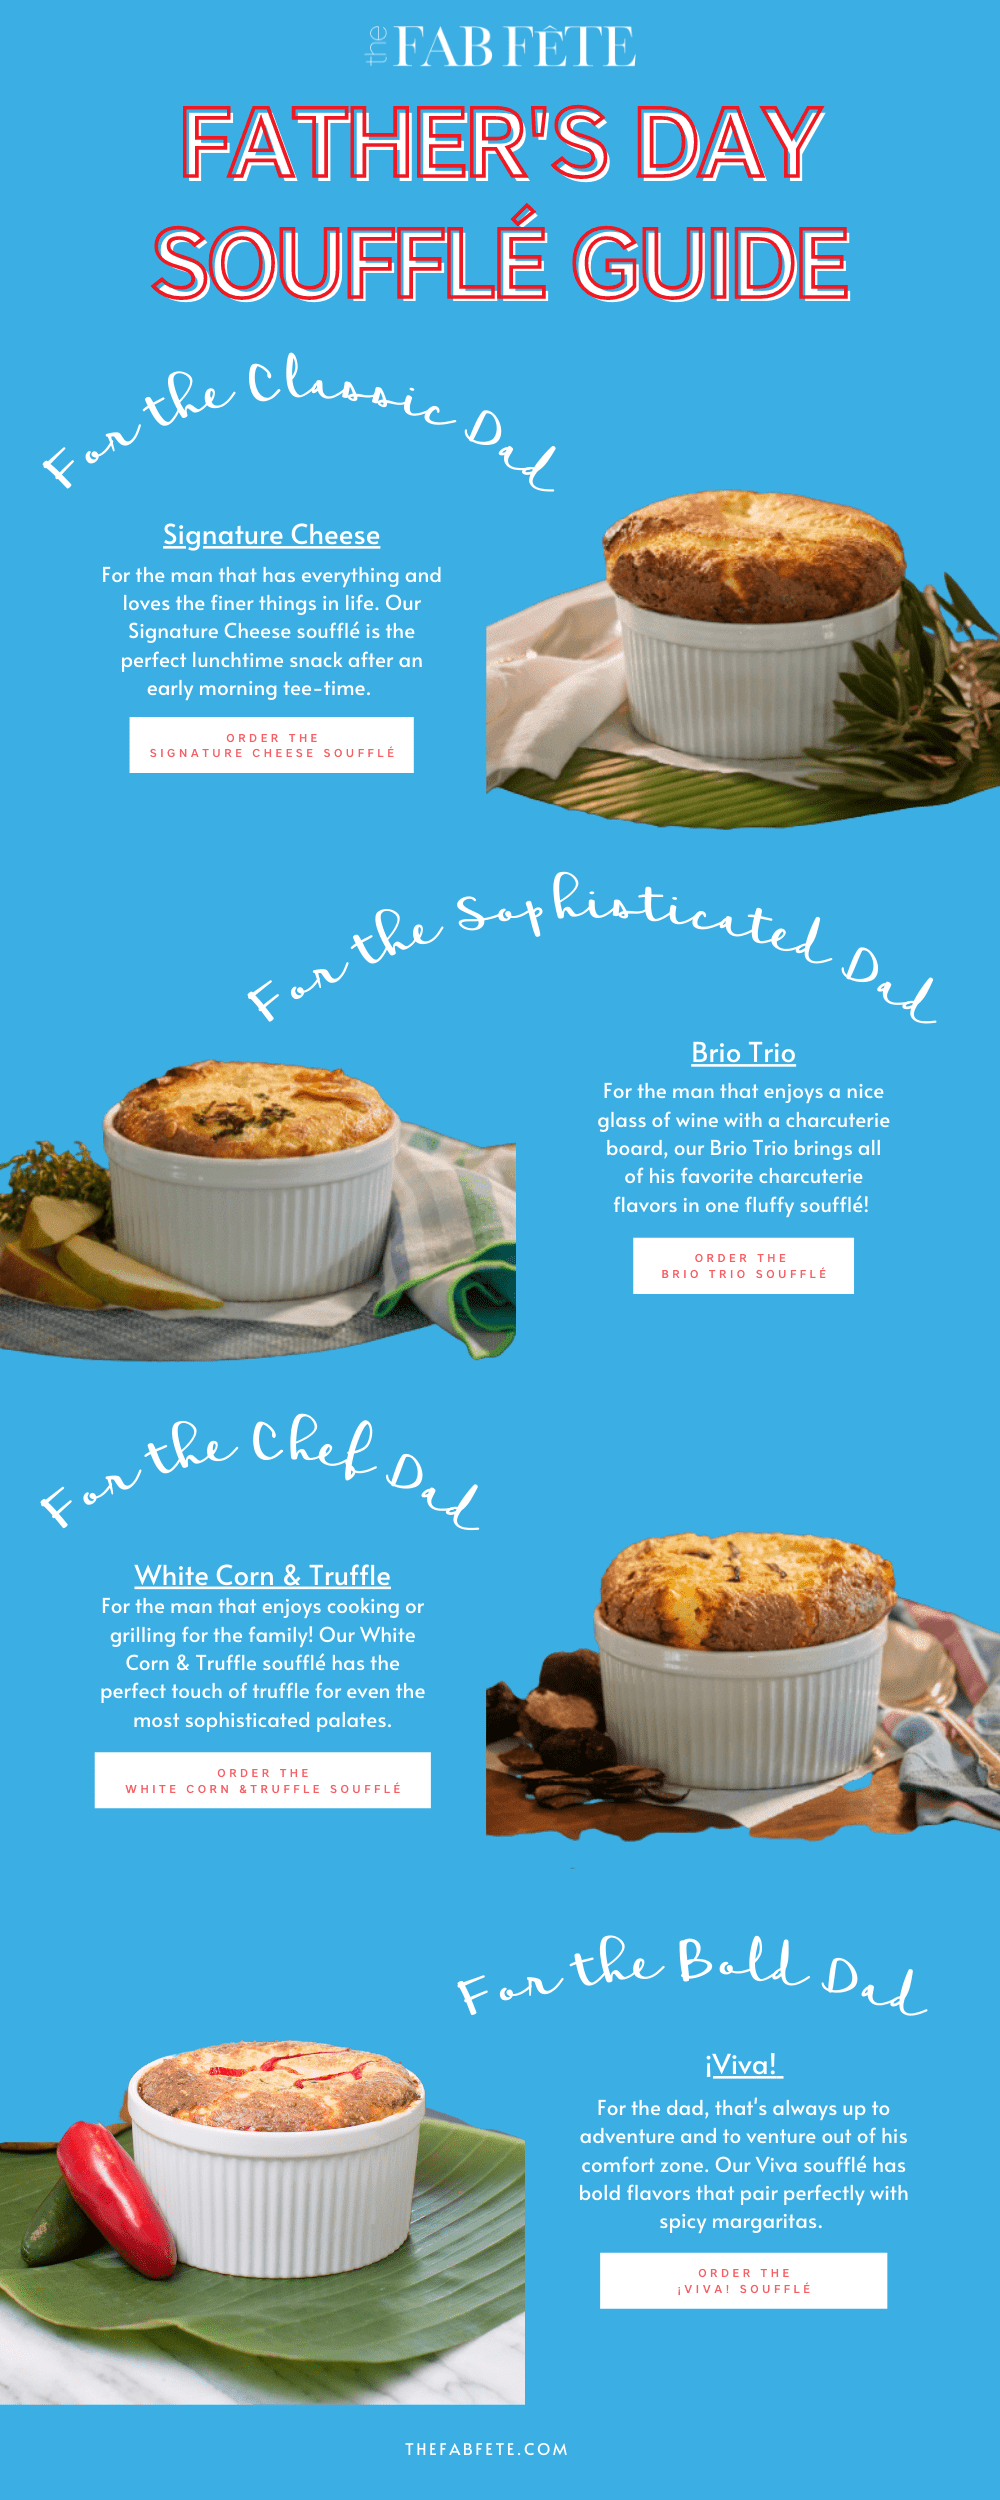 The Fab Fête Cheese Soufflés Delivered - Father's Day Soufflé Guide